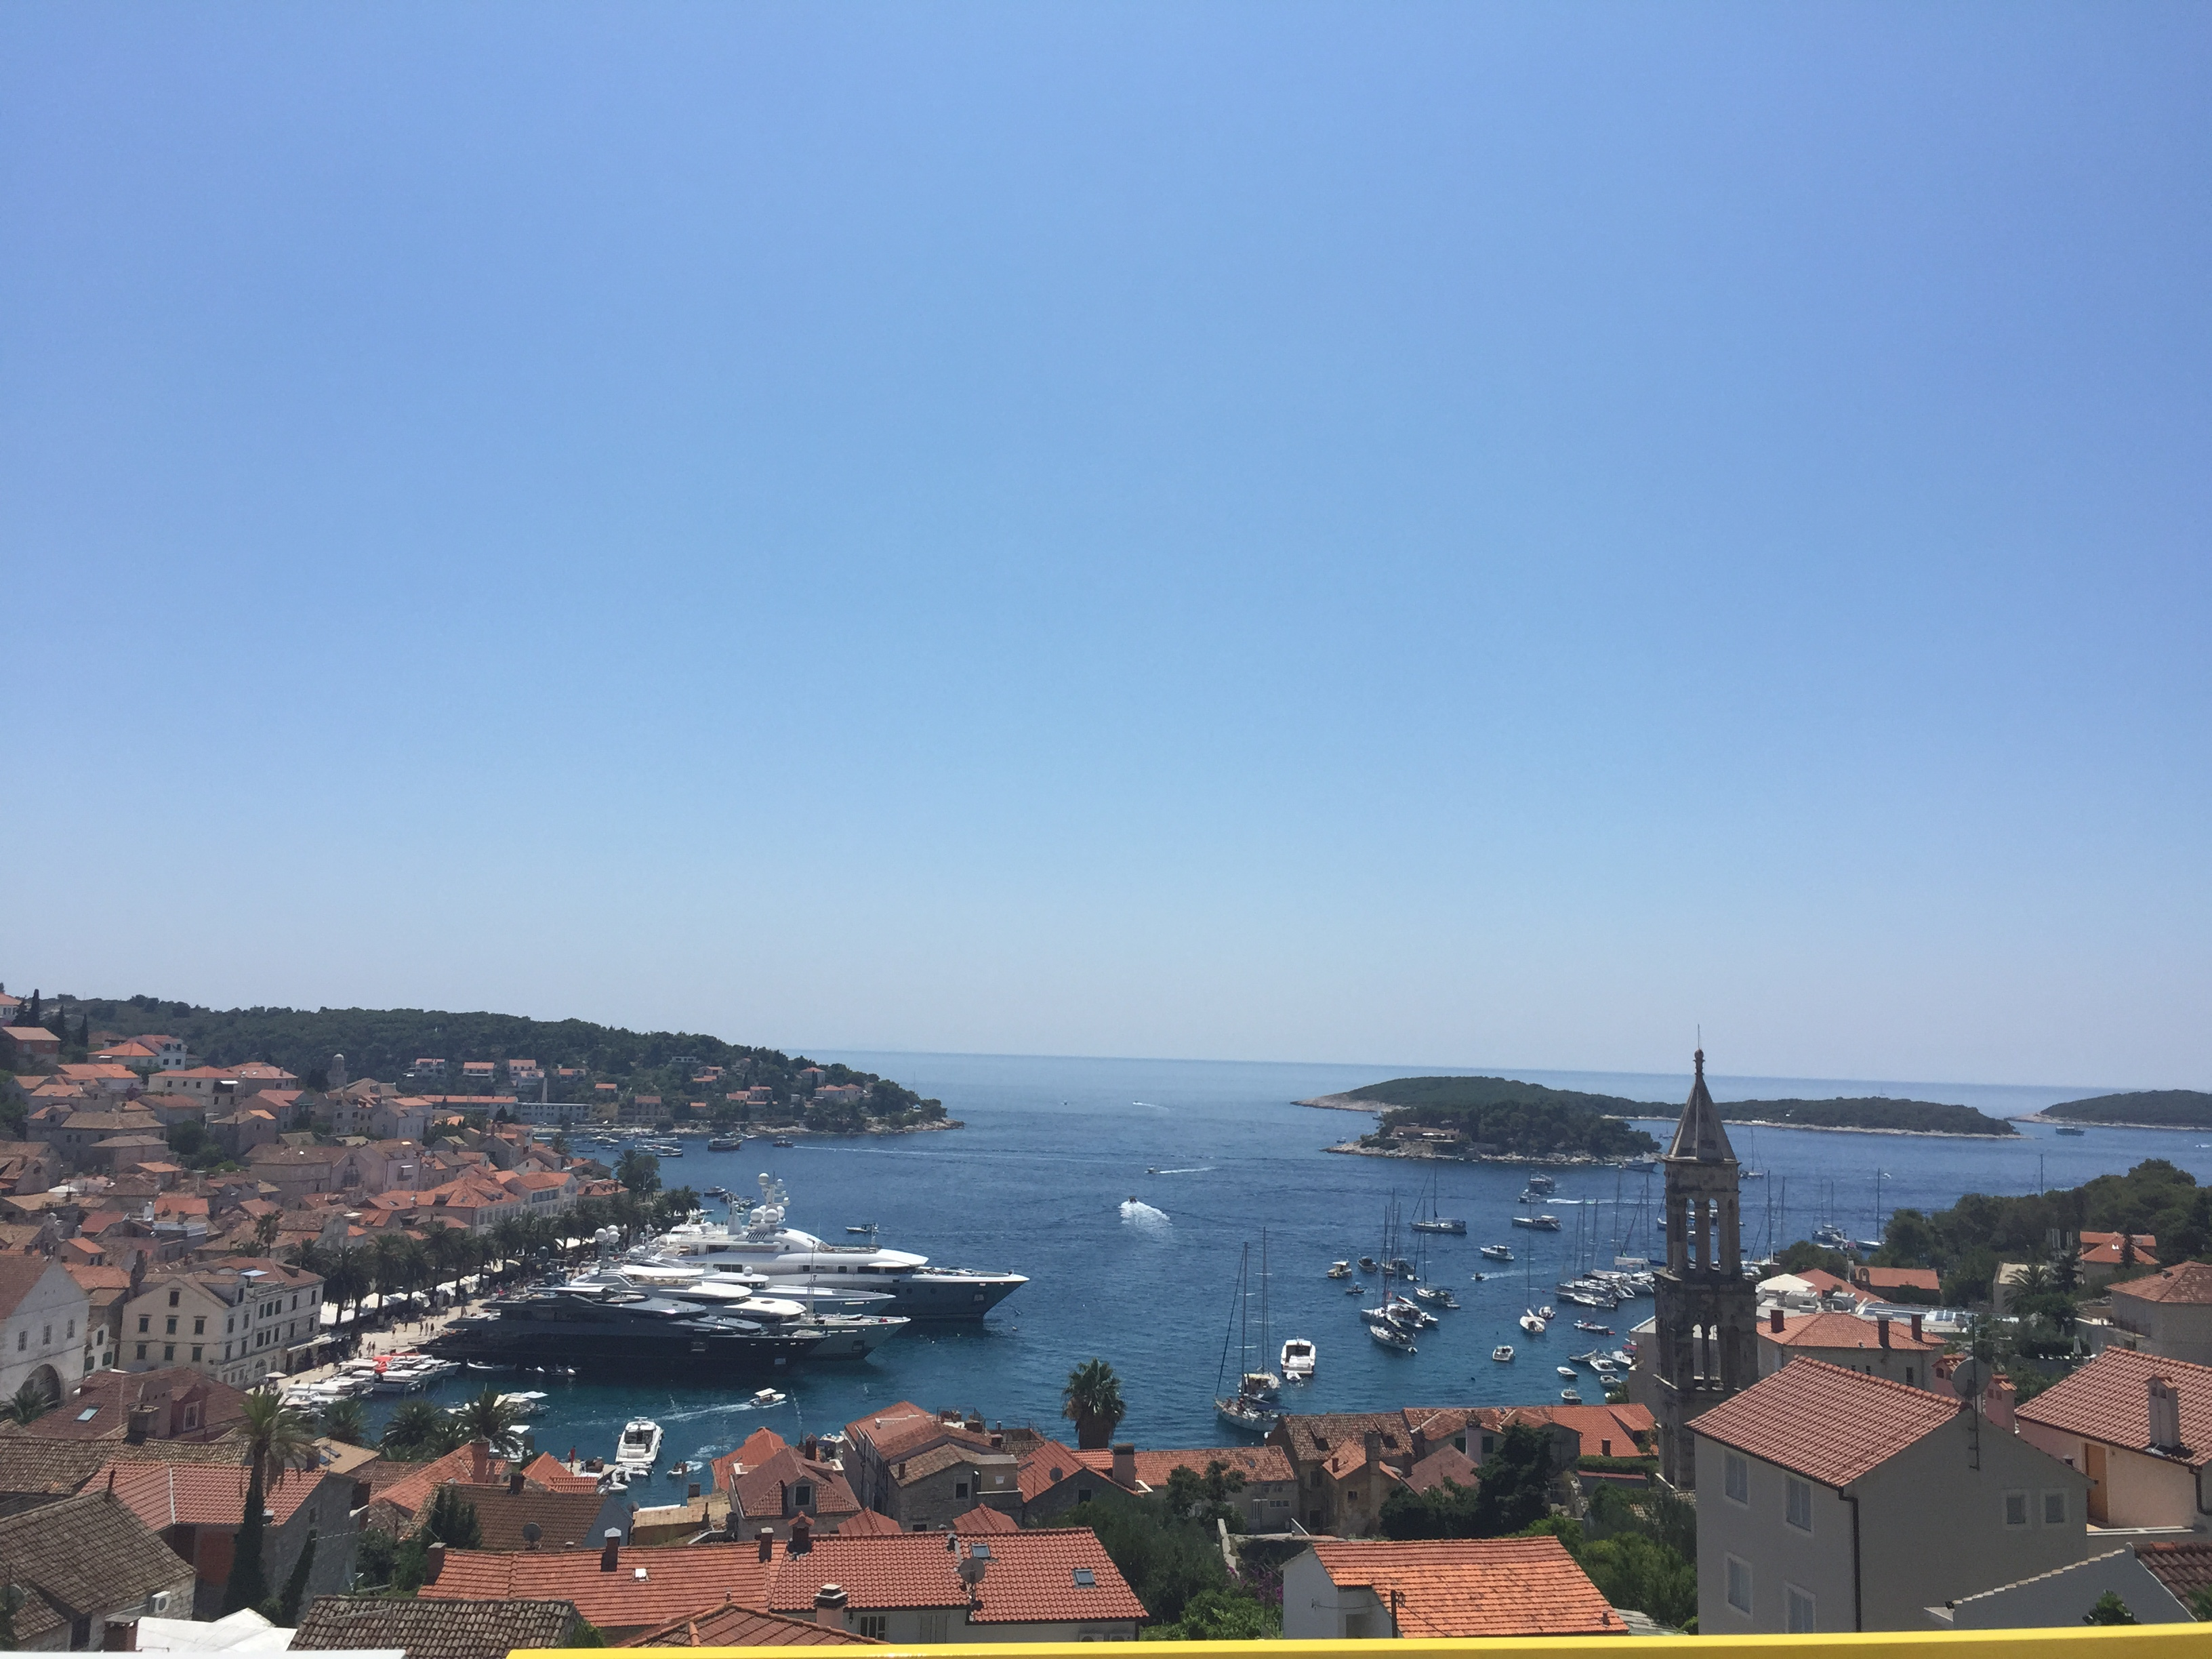 Croatia's Counter-intuitive Beauty